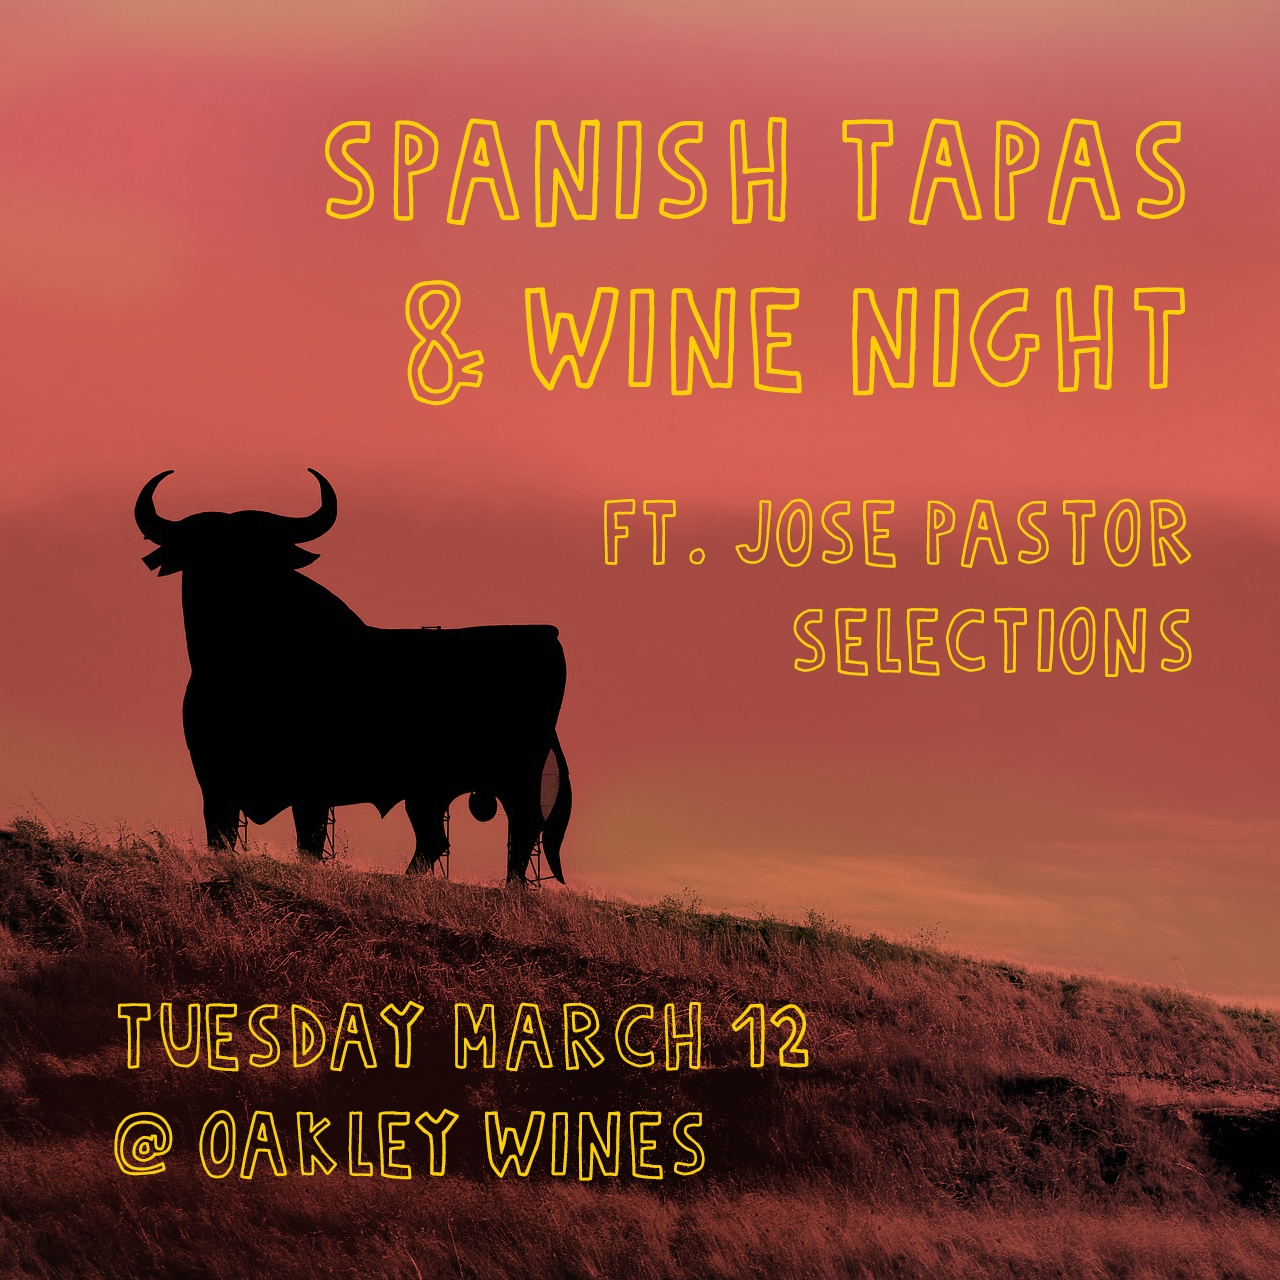 - Spanish Wines + Spanish Tapas (including cheese selections from The Rhined)Enjoy (new to Cincinnati) Spanish wines from importer Jose Pastor Selections. To accompany, Bryan Harris, will be popping up in Oakley Wines' kitchen serving up a small menu of Spanish tapas. Spanish cheese from The Rhined will be available as well. Wine, gin & tonics, Basque ciders, and sherry will be flowing all paired with exceptional tapas and cheese from various regions in Spain.